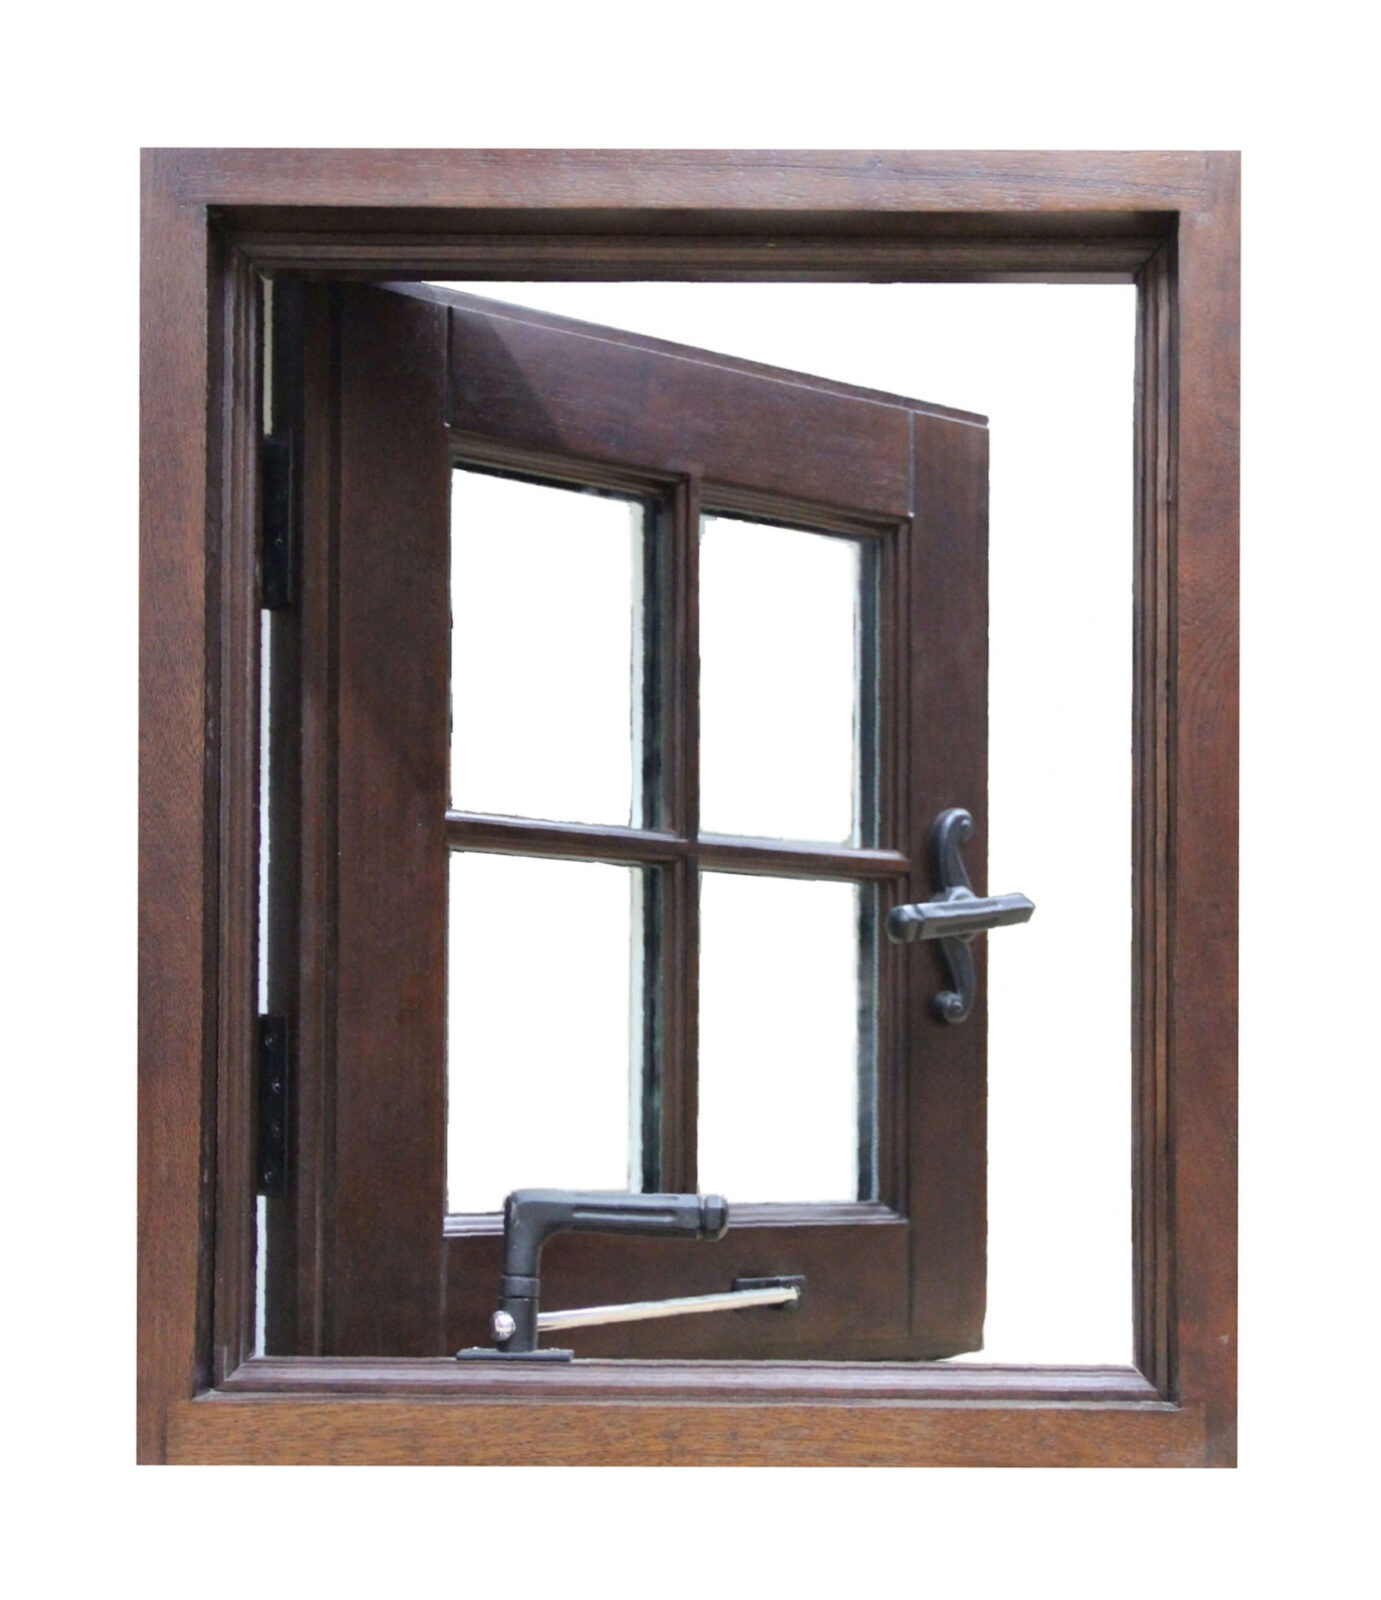 BRIDGEHAMPTON SINGLE CASEMENT WINDOW